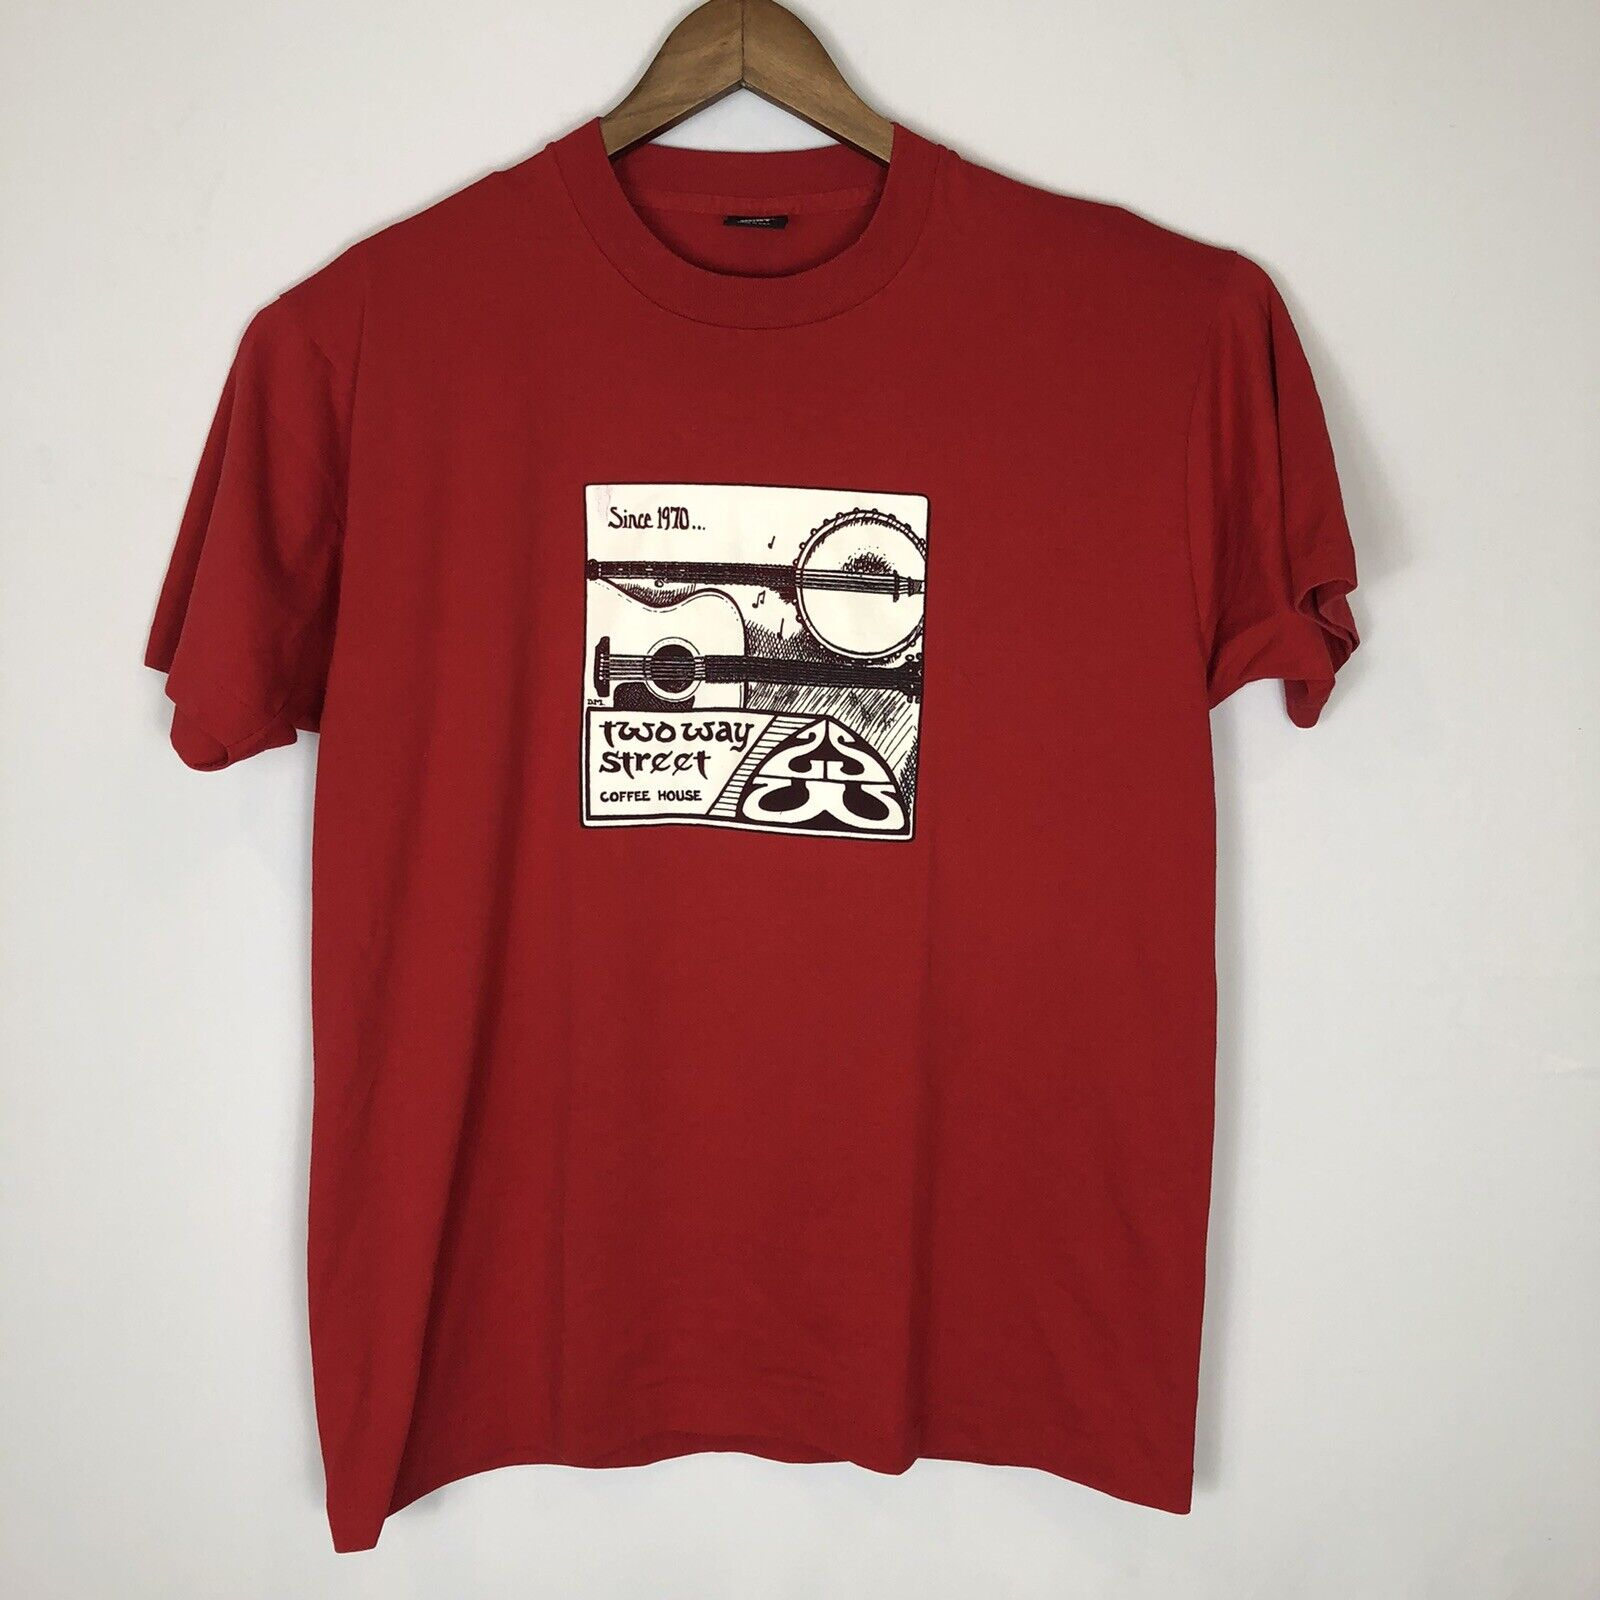 Vintage Screen Stars Two Way Street Coffee House Single Stitch Red T-Shirt XL